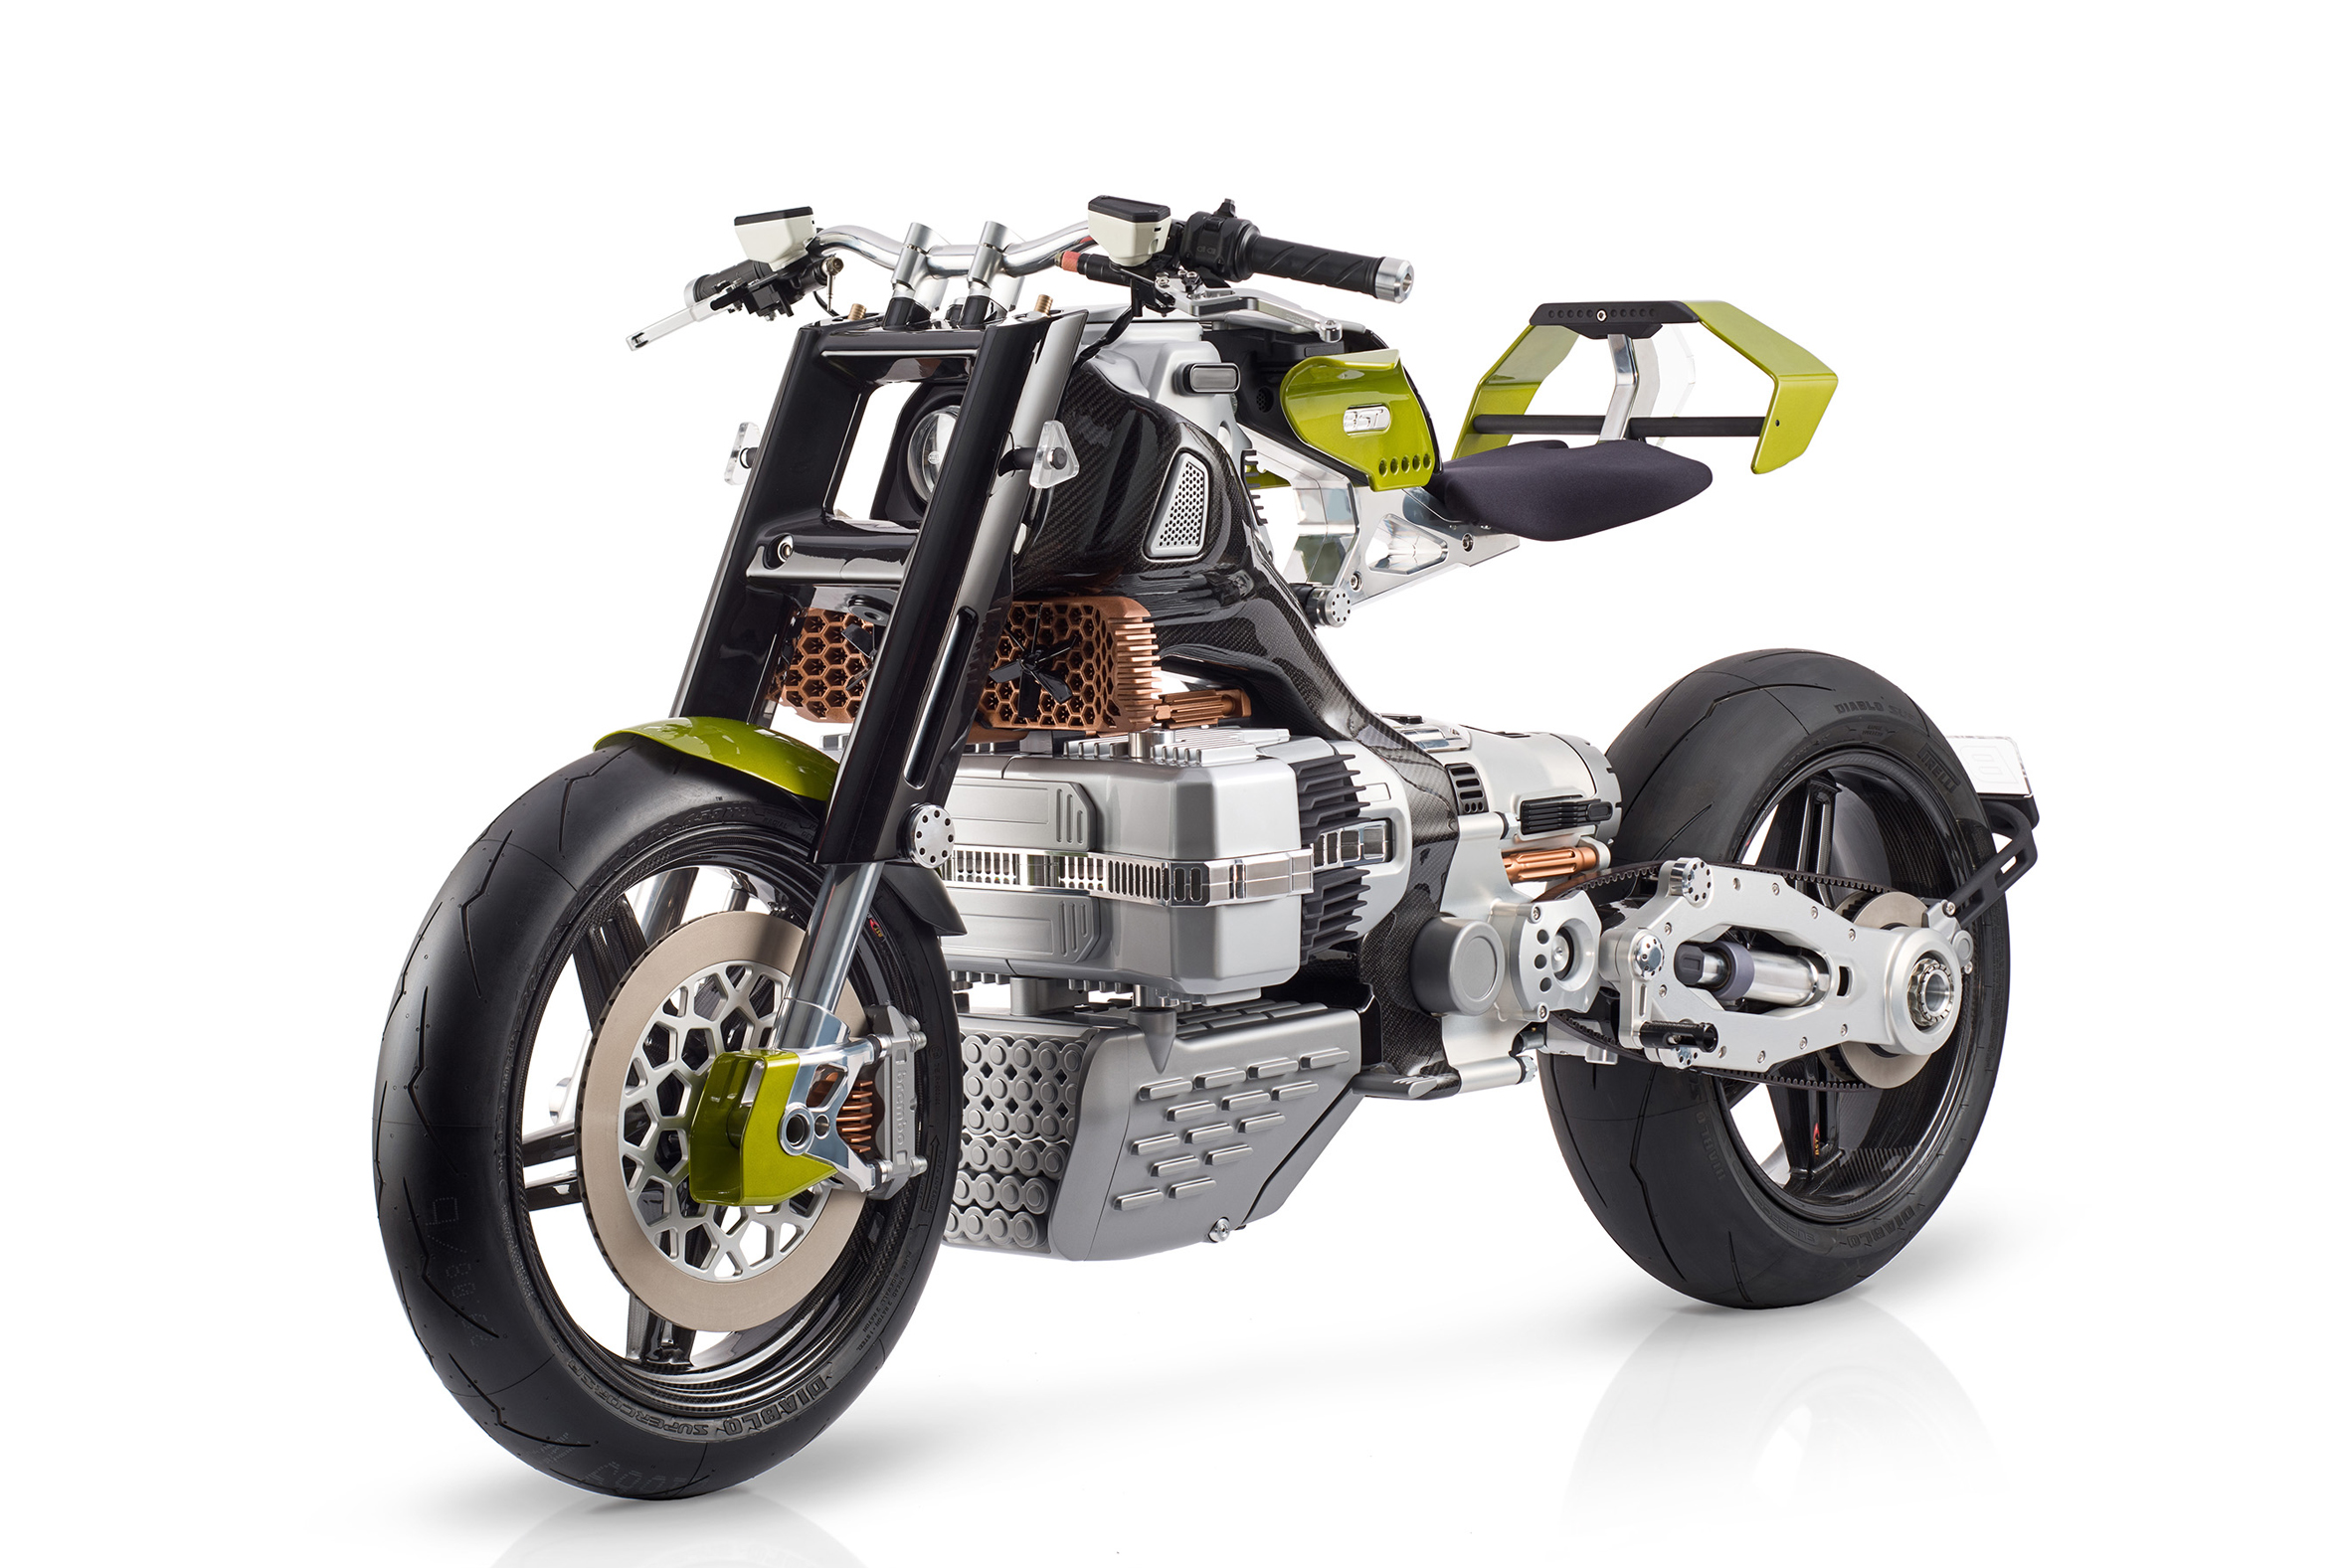 Blackstone HyperTek electric motorcycle smashes all molds